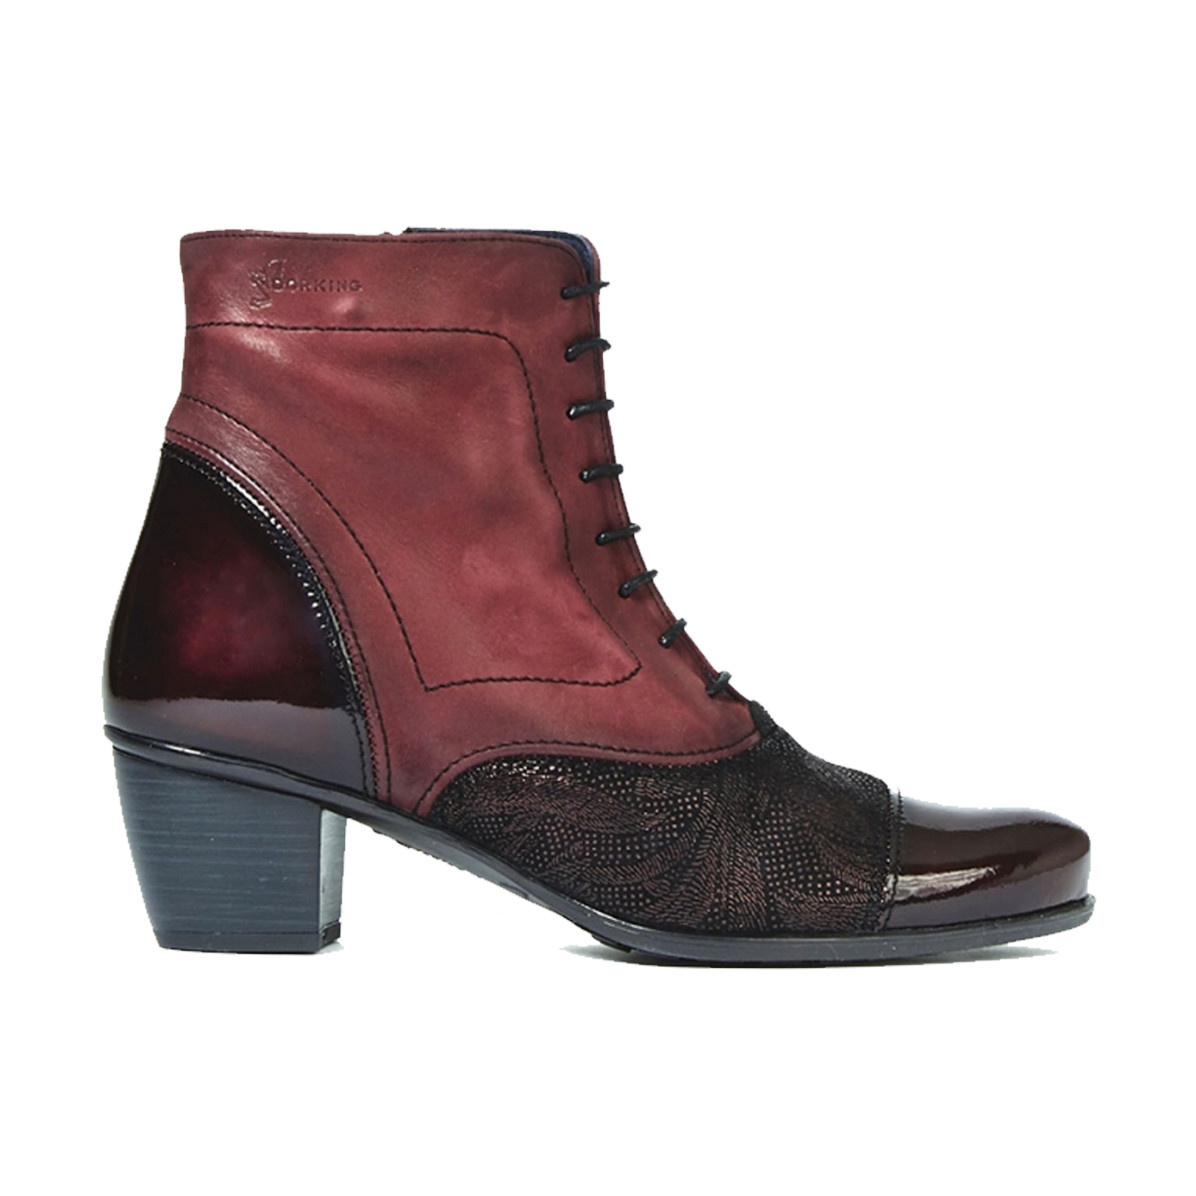 Dorking Dorking Women's D7255 Burgundy